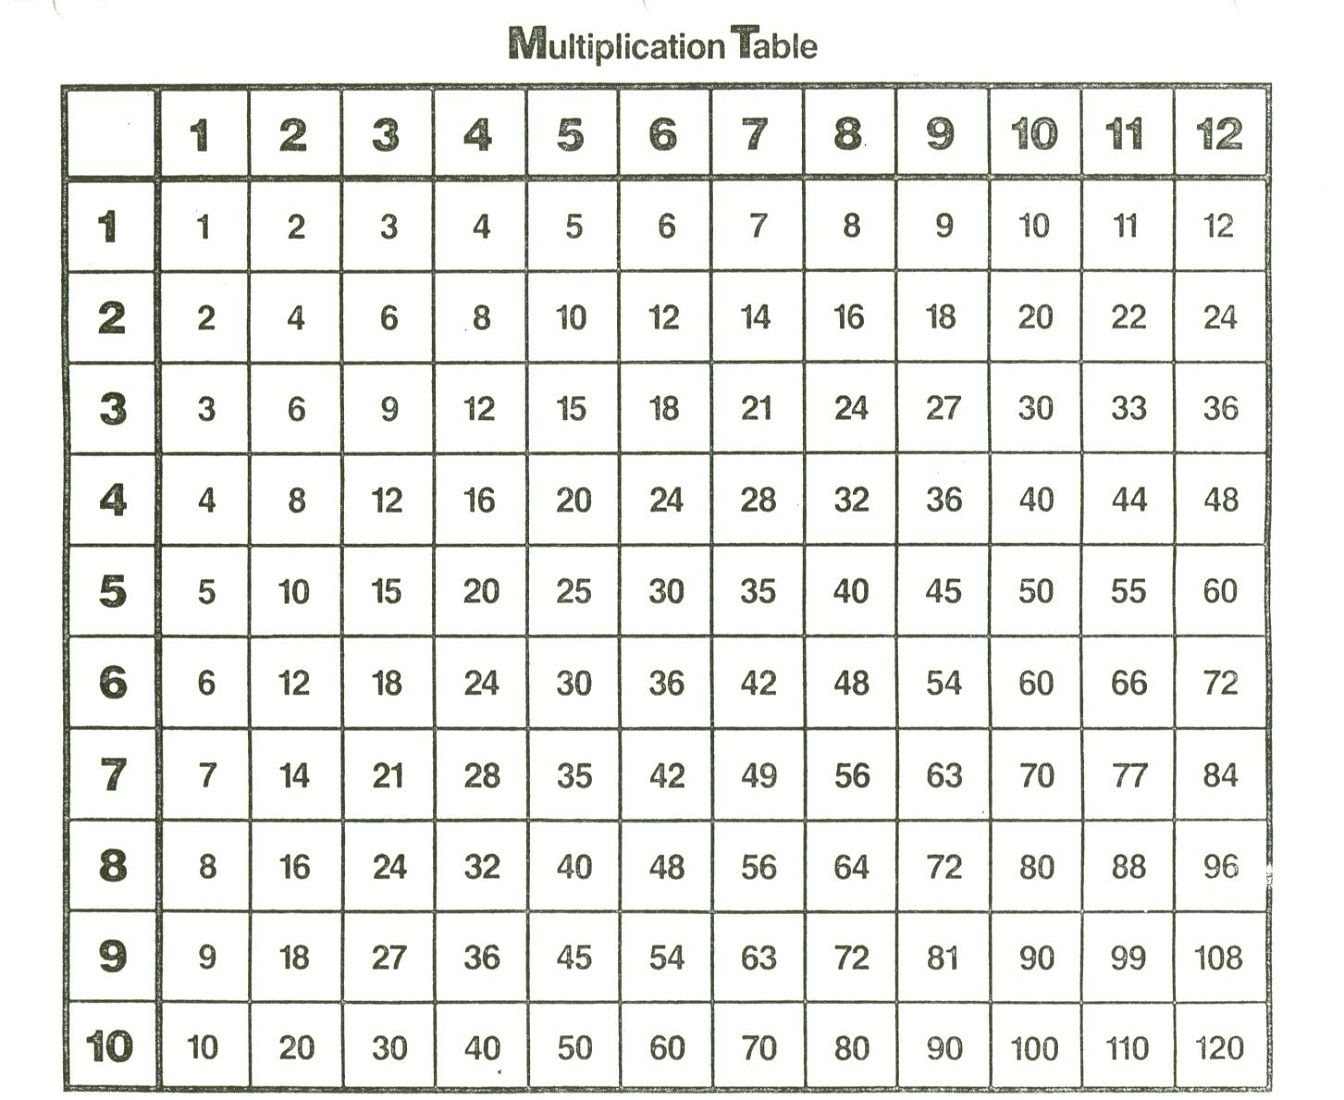 Times Tables Chart 1 12 To Print - Vatan.vtngcf within Printable Multiplication Chart 1-9